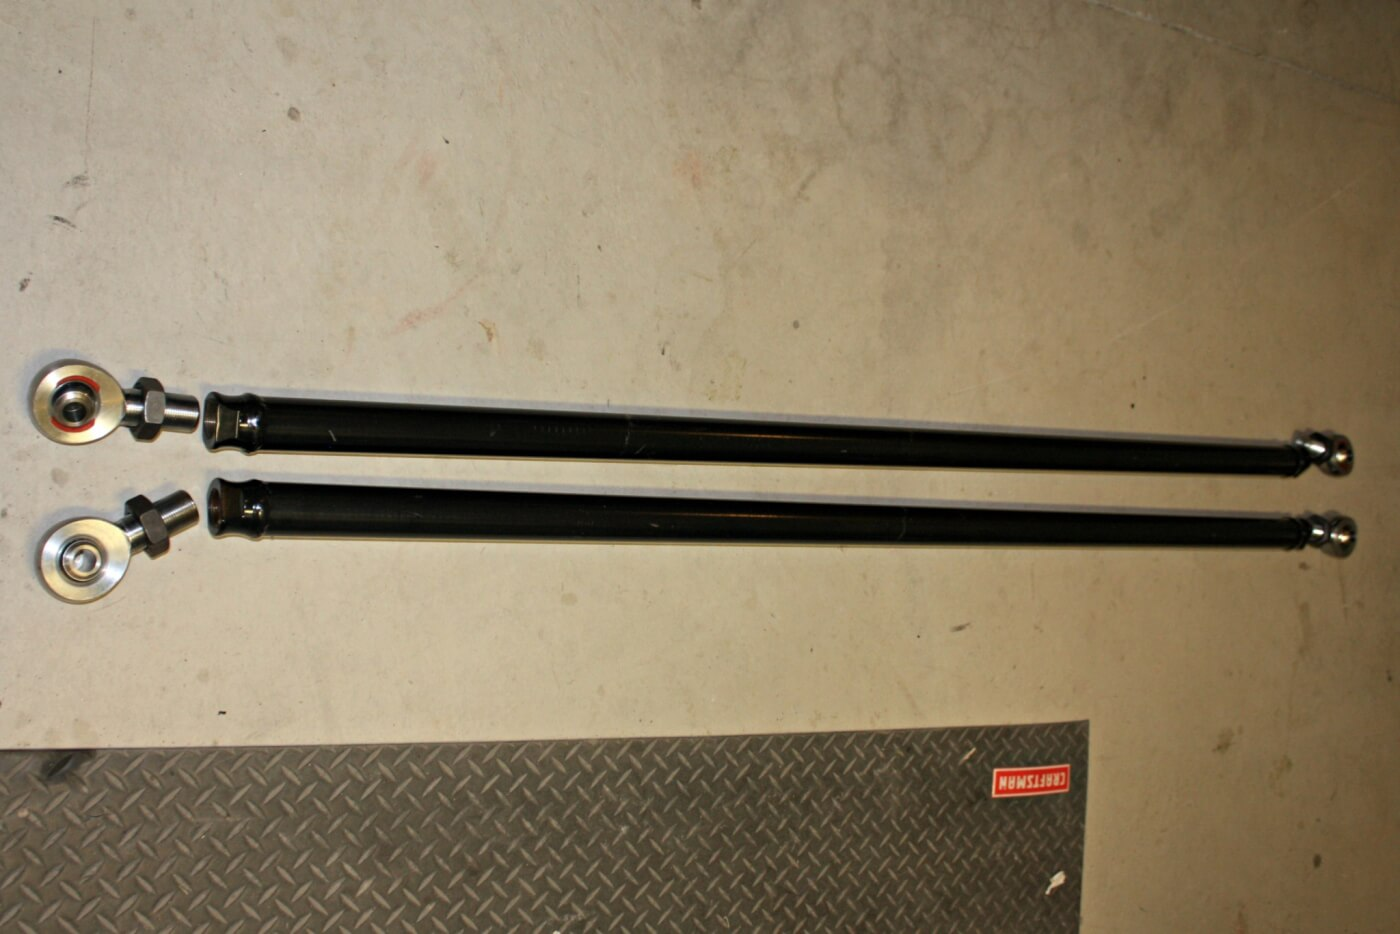 6. For GM applications, Longhorn Fab Shop offers two lengths of traction bars, both offered in their standard or professional grade kits. For short bed trucks, a 72-inch bar and long bed applications get an 86-inch bar. The 2-inch heavy wall tubes are pre-welded with threaded bungs and powdercoated.